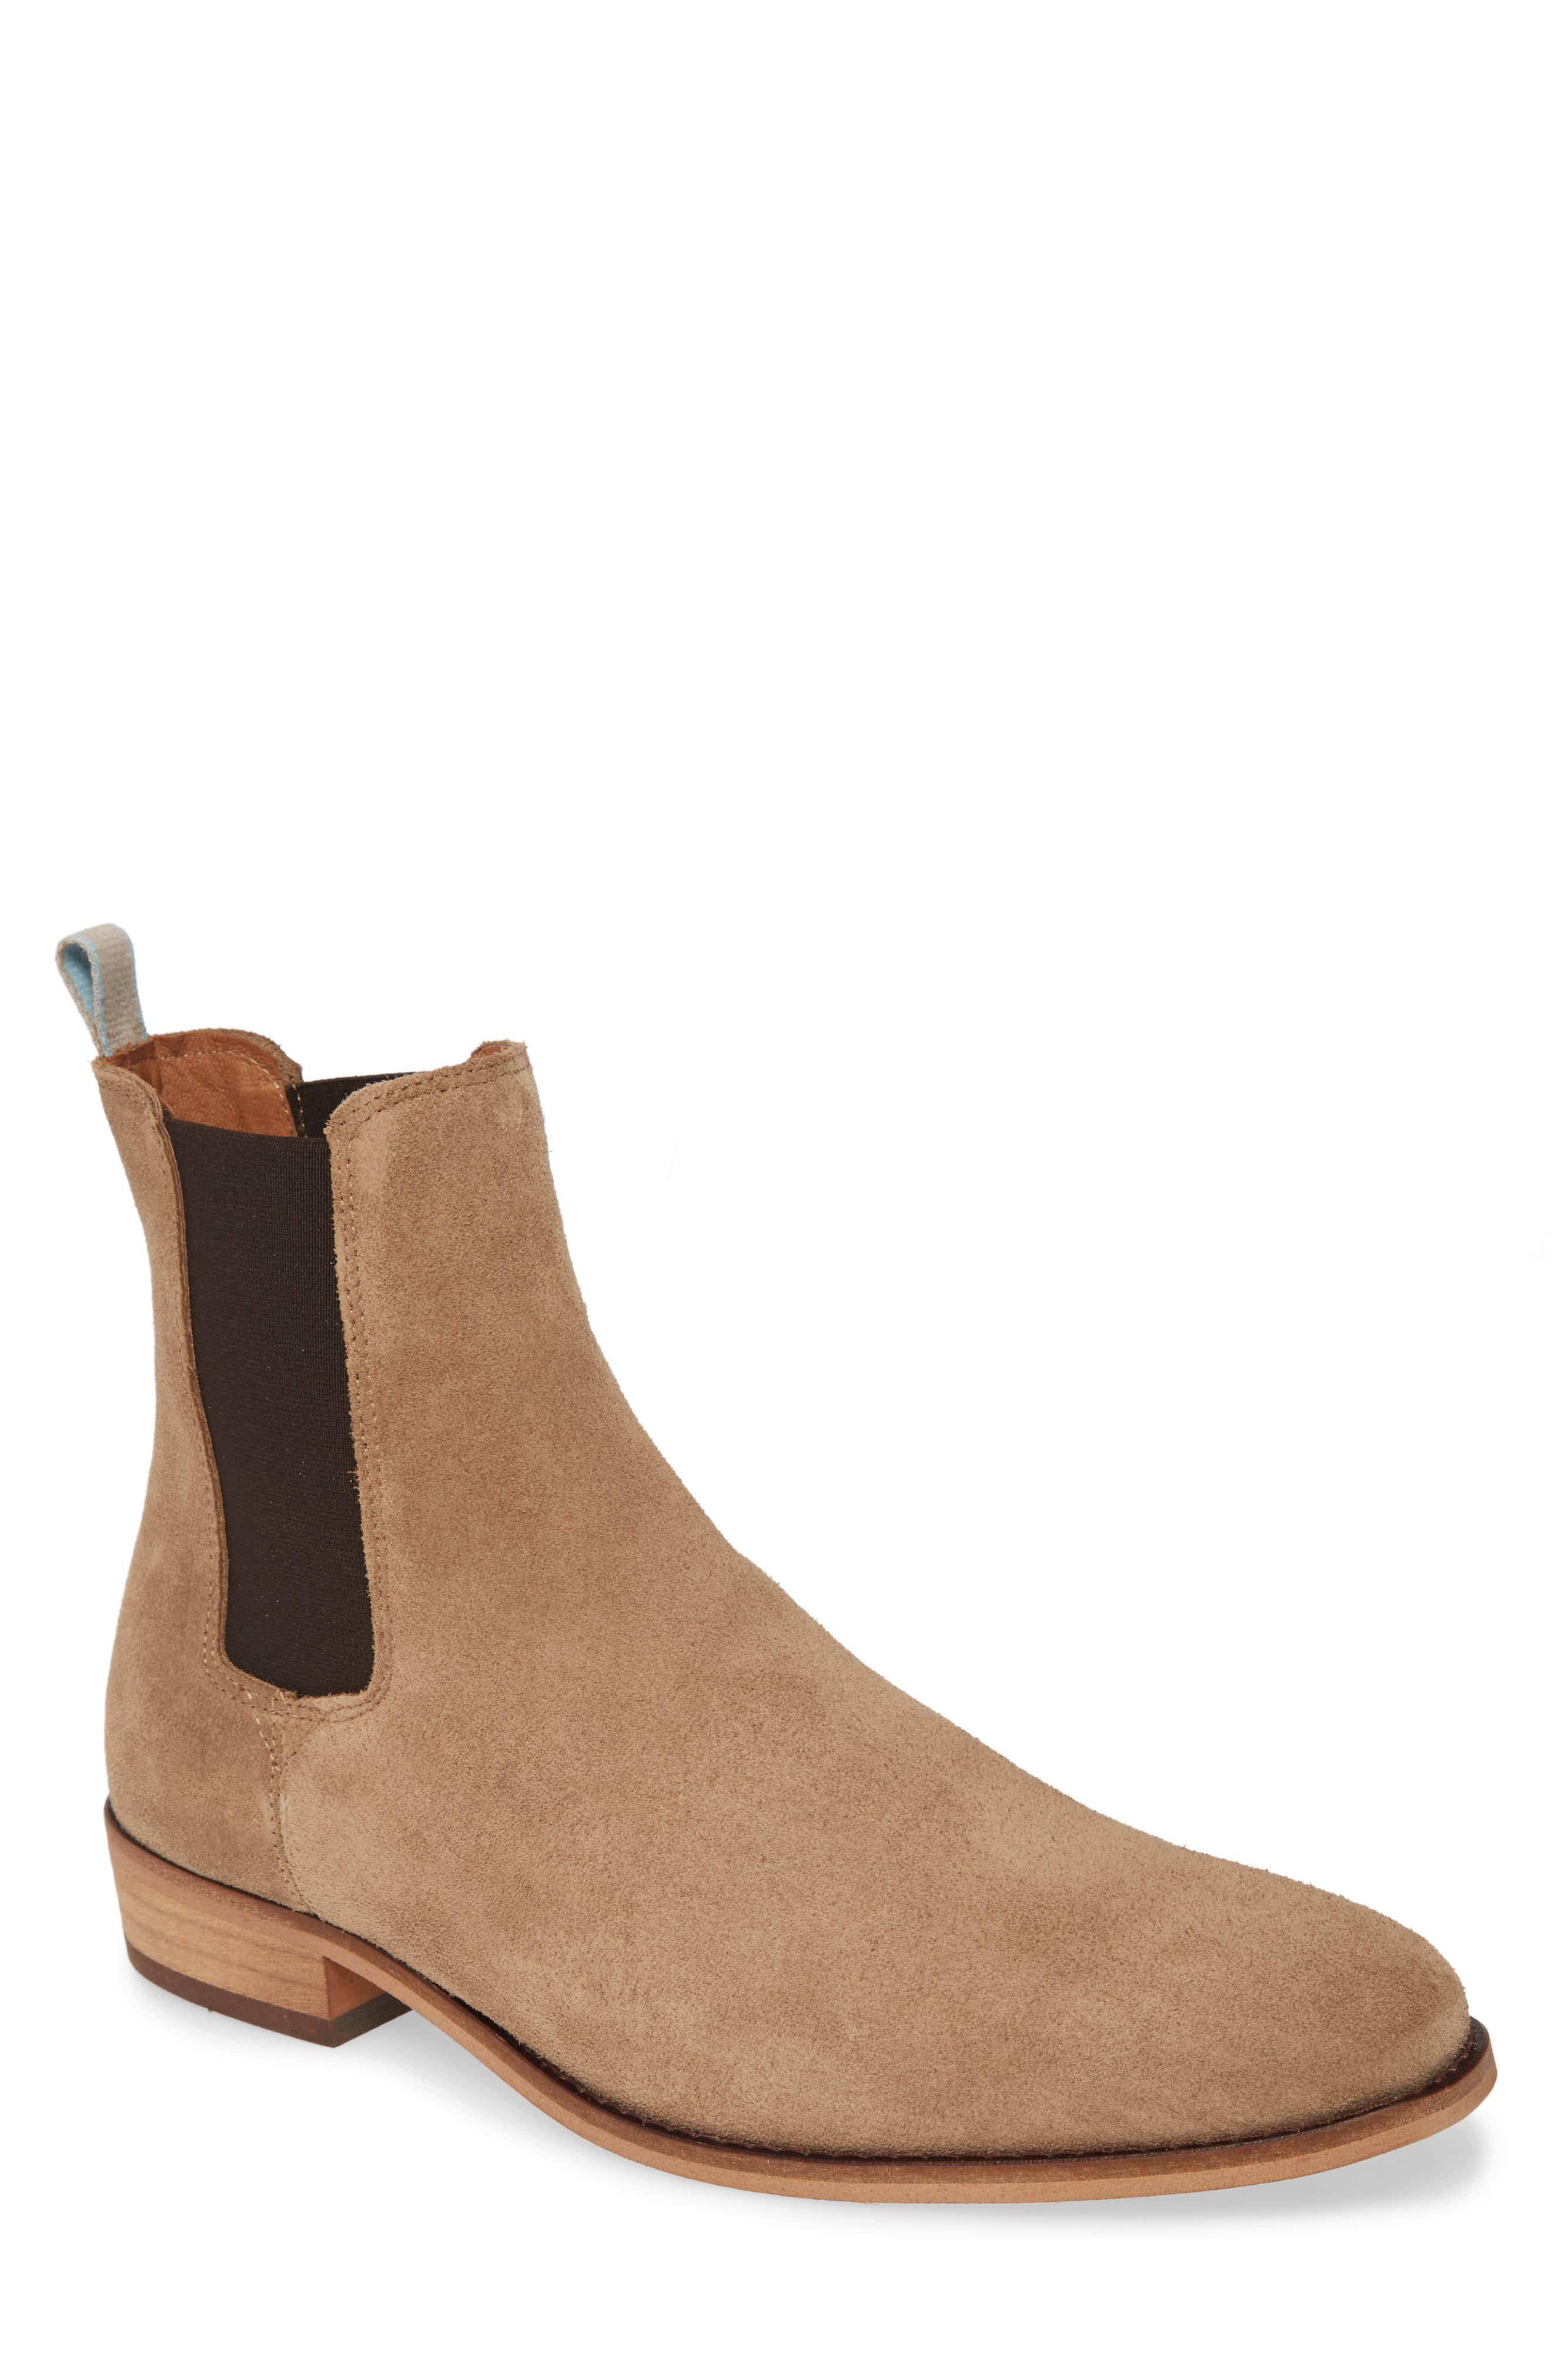 Shoe The Bear Suede Eli Chelsea Boot in